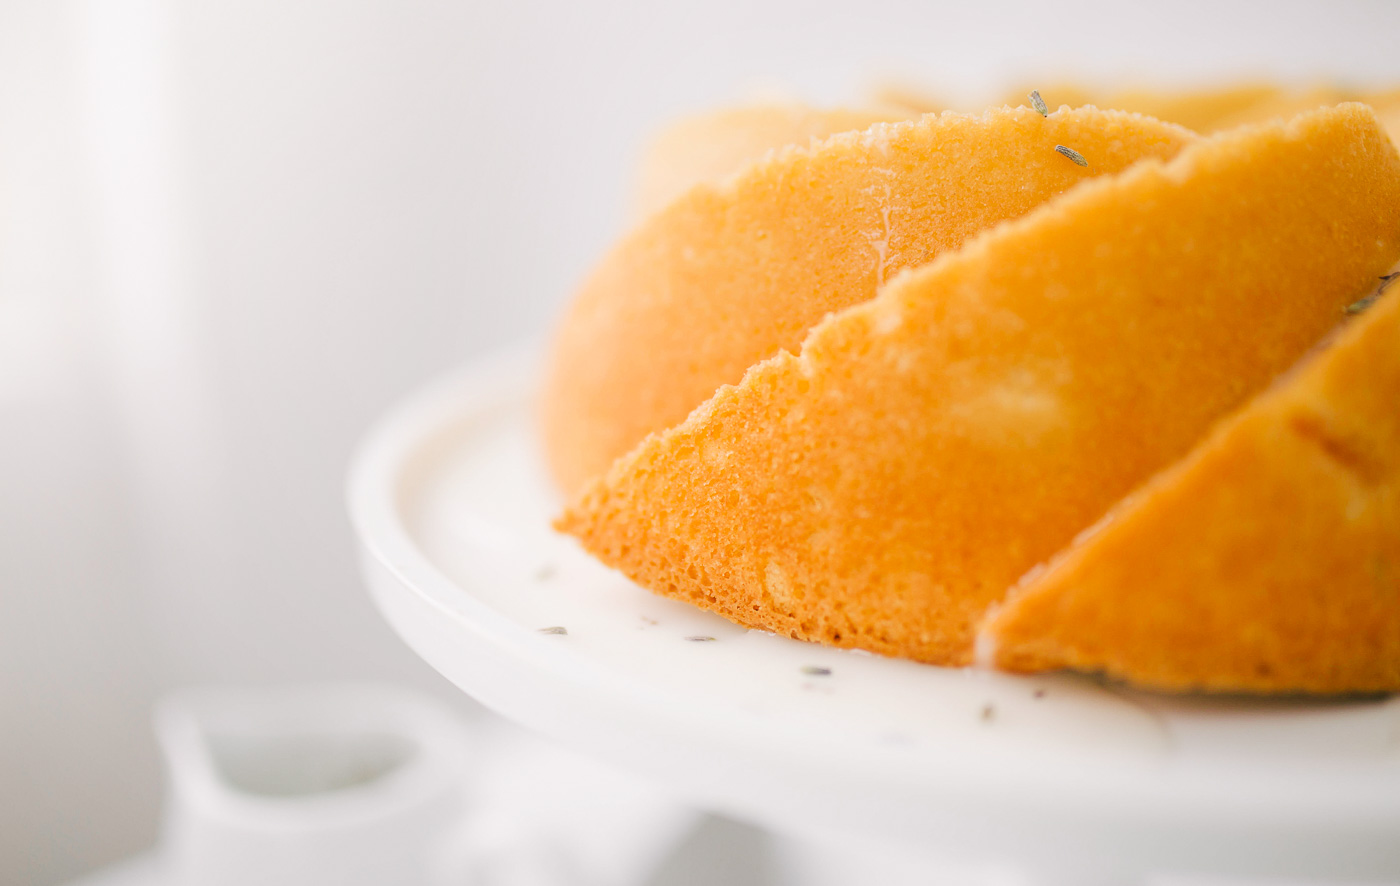 A fresh and light peach bundt cake recipe from Lauren Cermak of the Southern Lifestyle Blog, Going For Grace. Savor every moment of peach season with this easy bundt cake recipe!